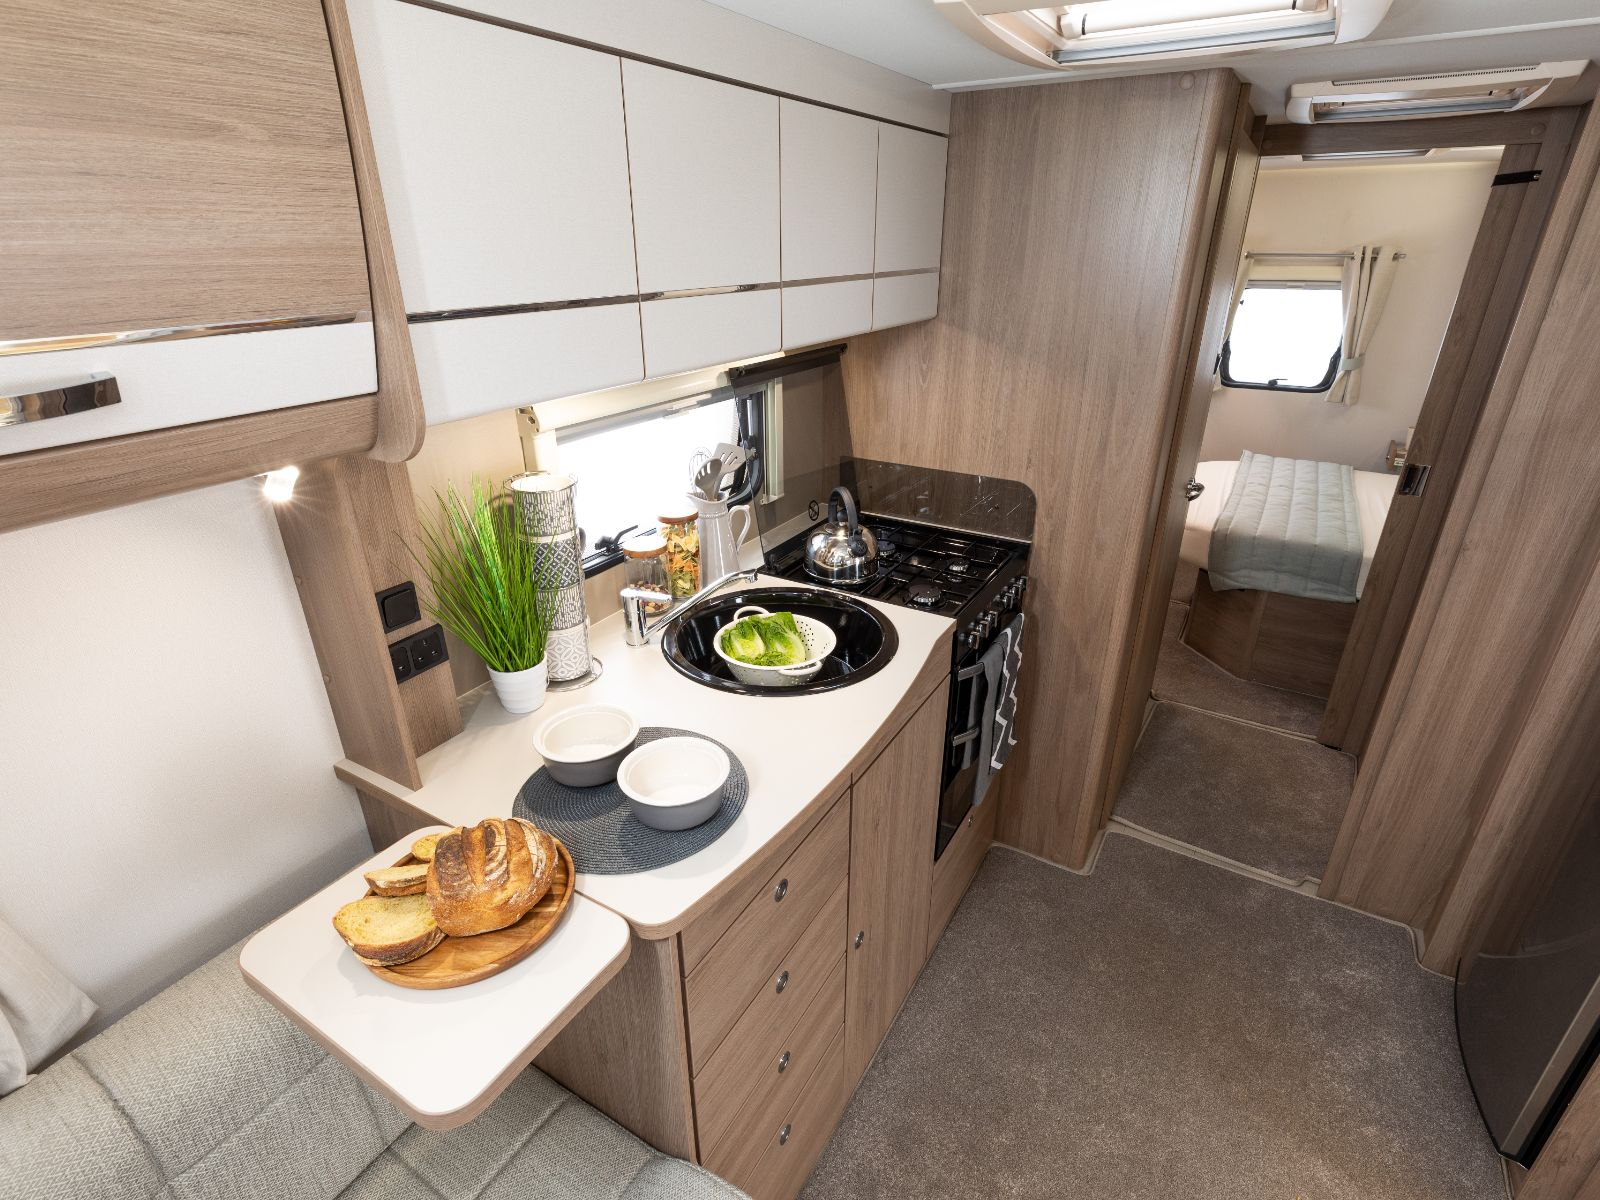 Kitchen layout with overhead storage, oven and bread resting on counter with a view of the bedroom featuring a double bed'